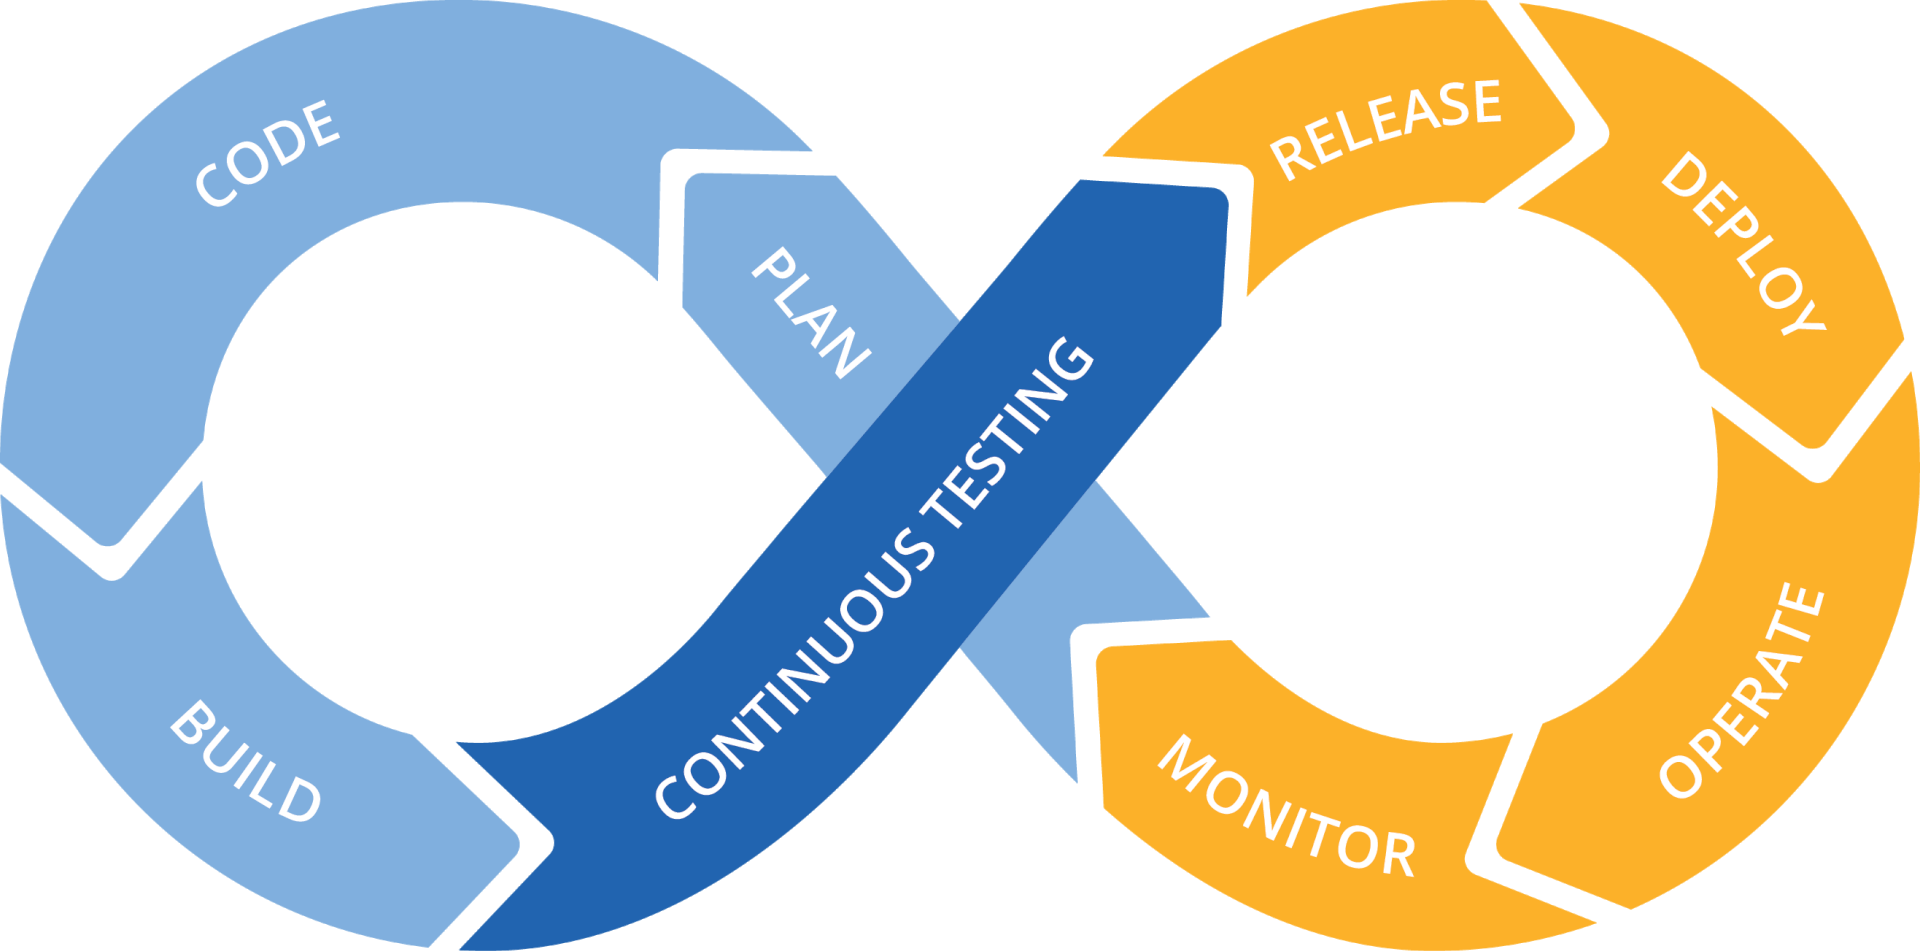 DevOps-cycle-Extended